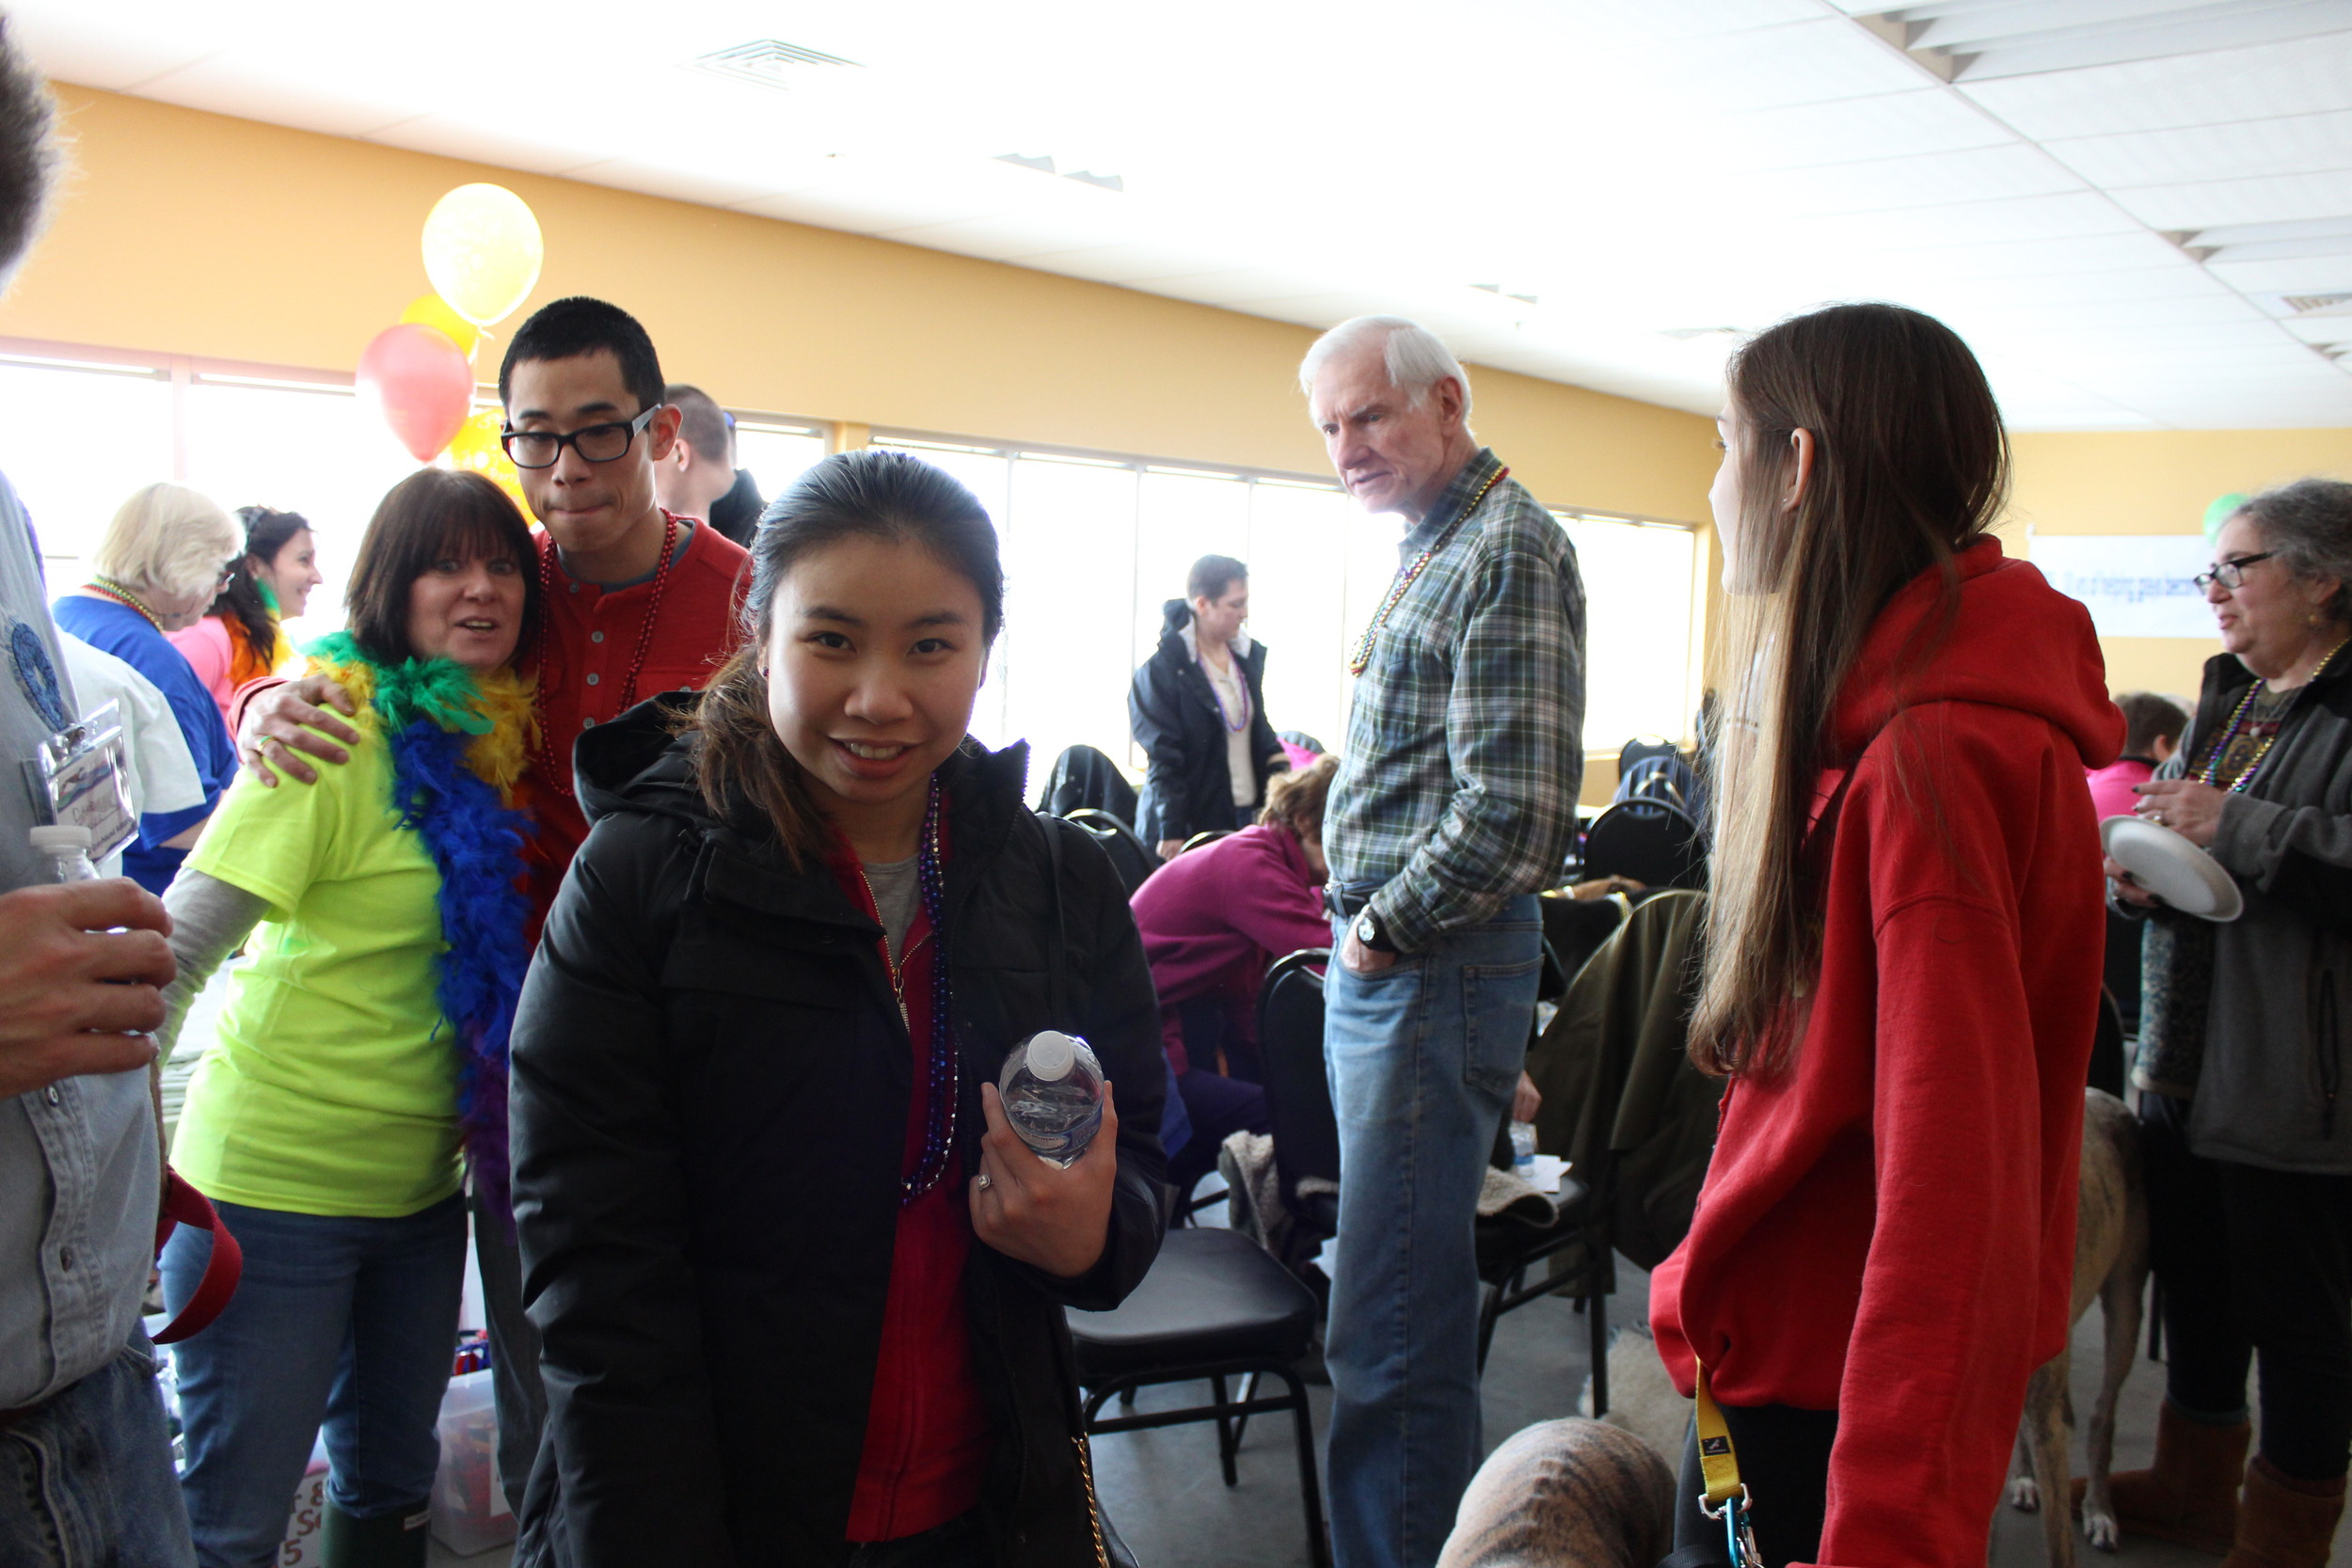 Wendy greeting some future adoptees who dropped in to visit!